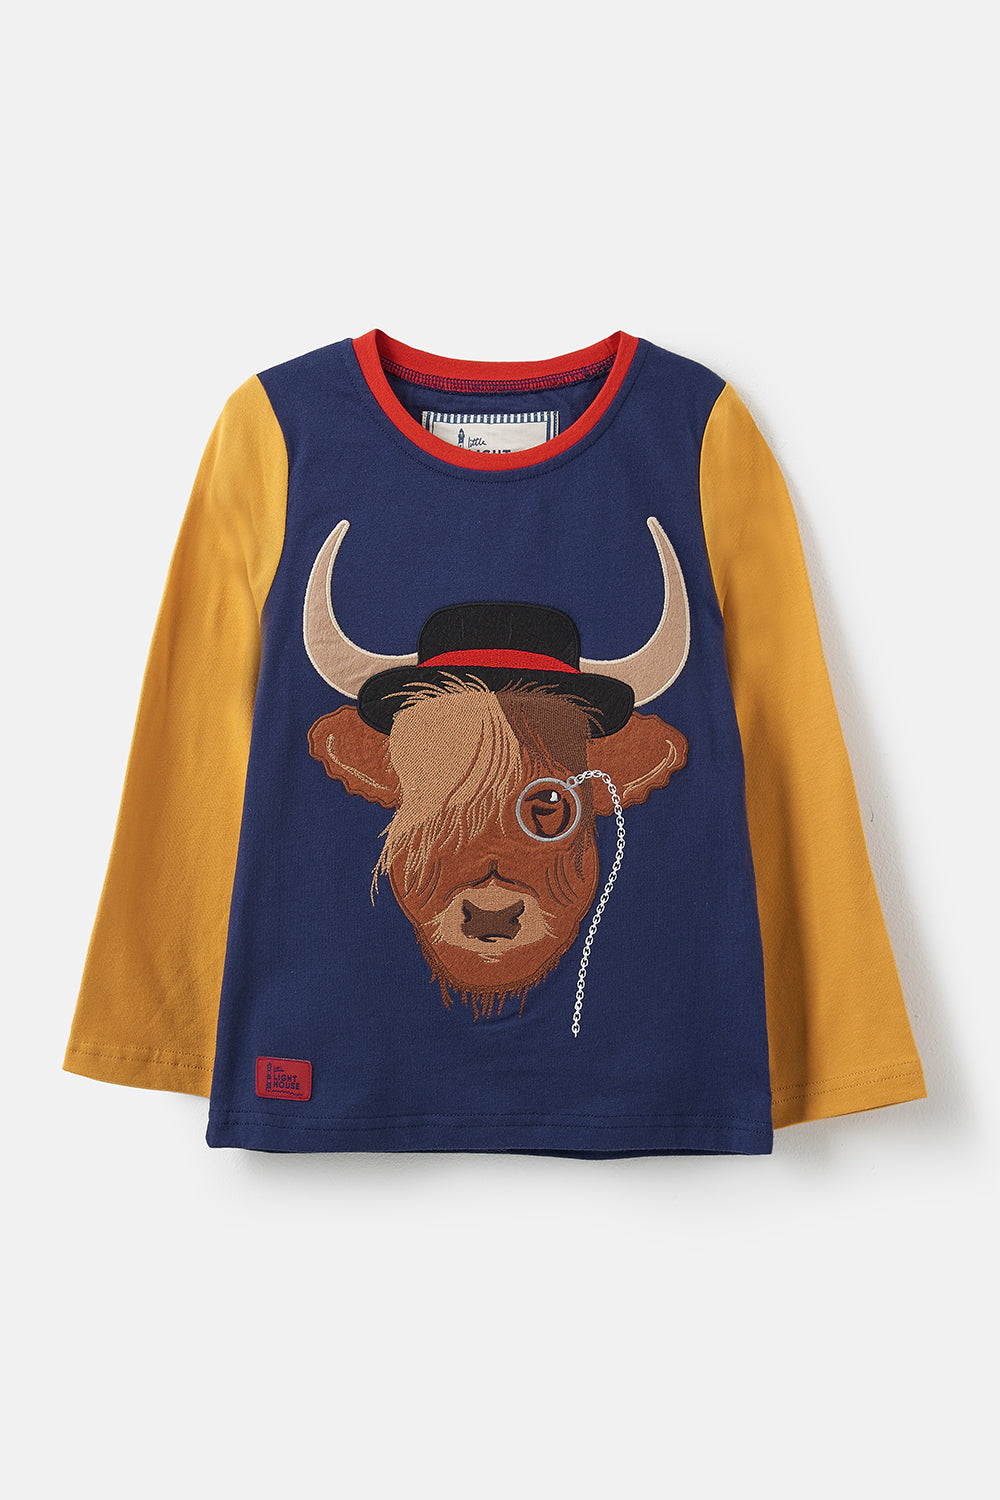 Lighthouse Oliver Boys Long Sleeve Top - Aberdeen Angus Cow Print